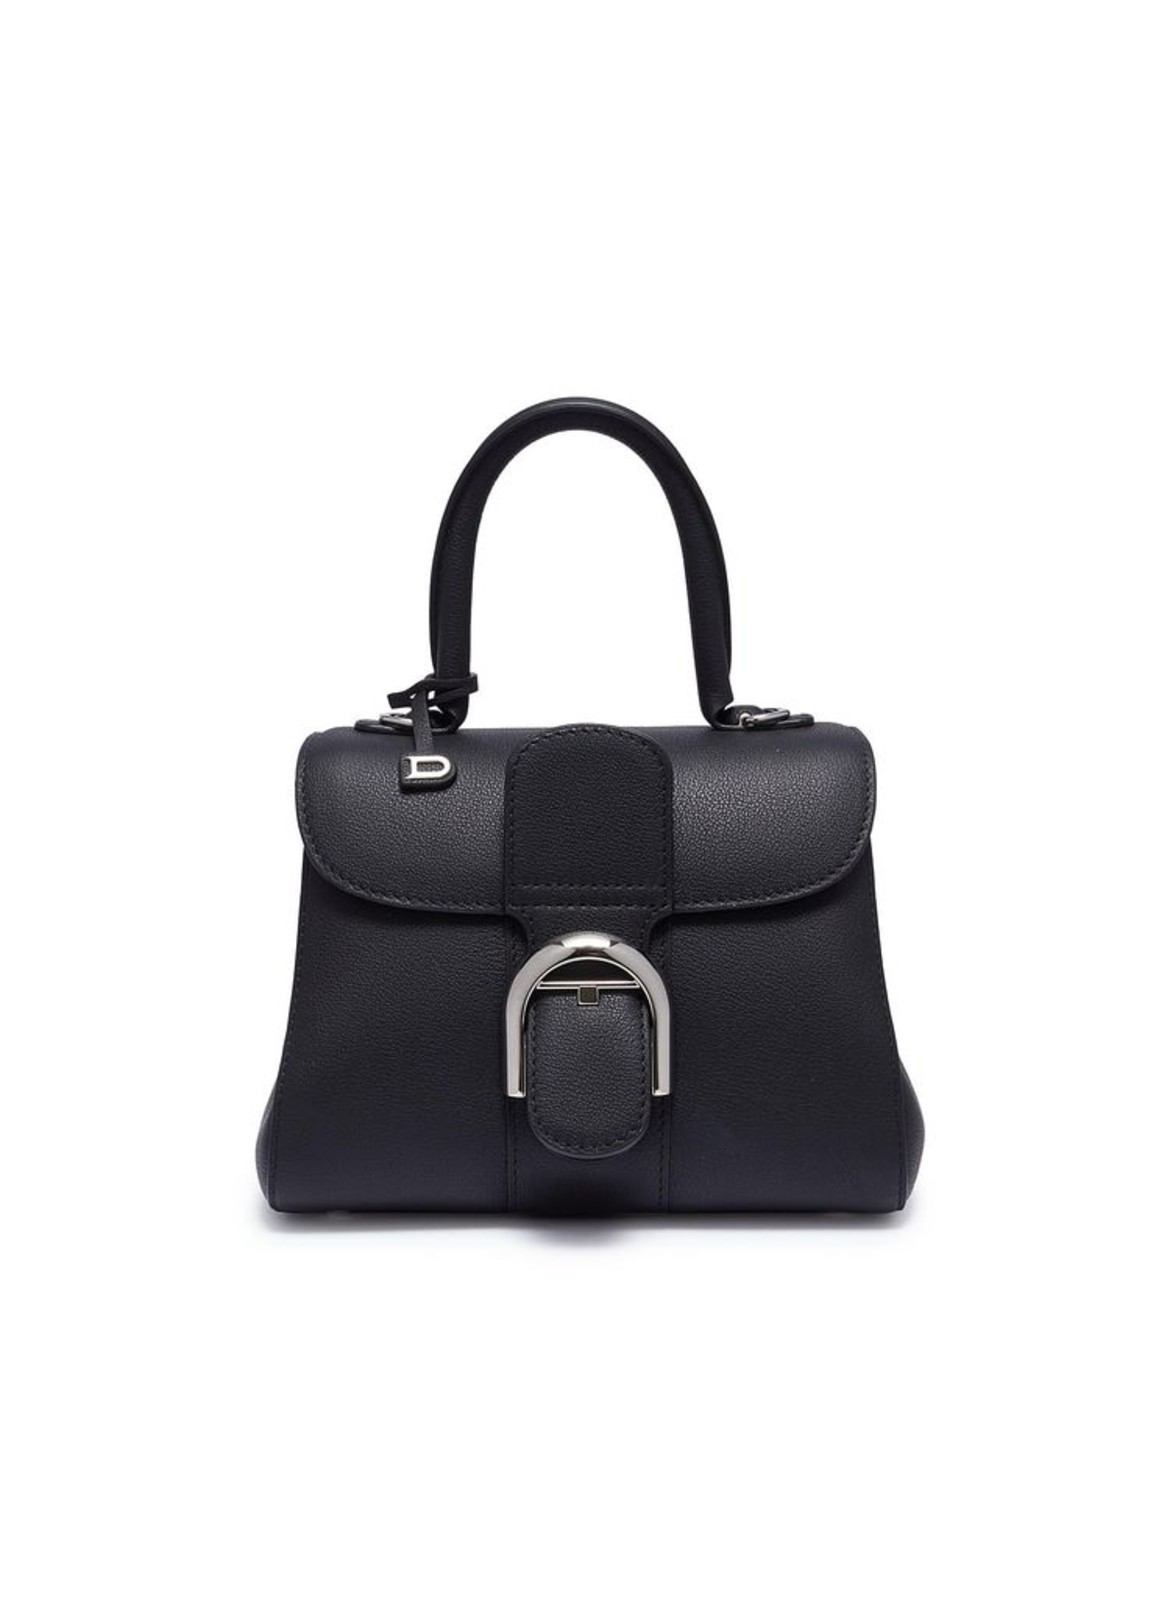 DELVAUX Le Brillant 迷你手袋 HK$36,000 from Lane Crawford